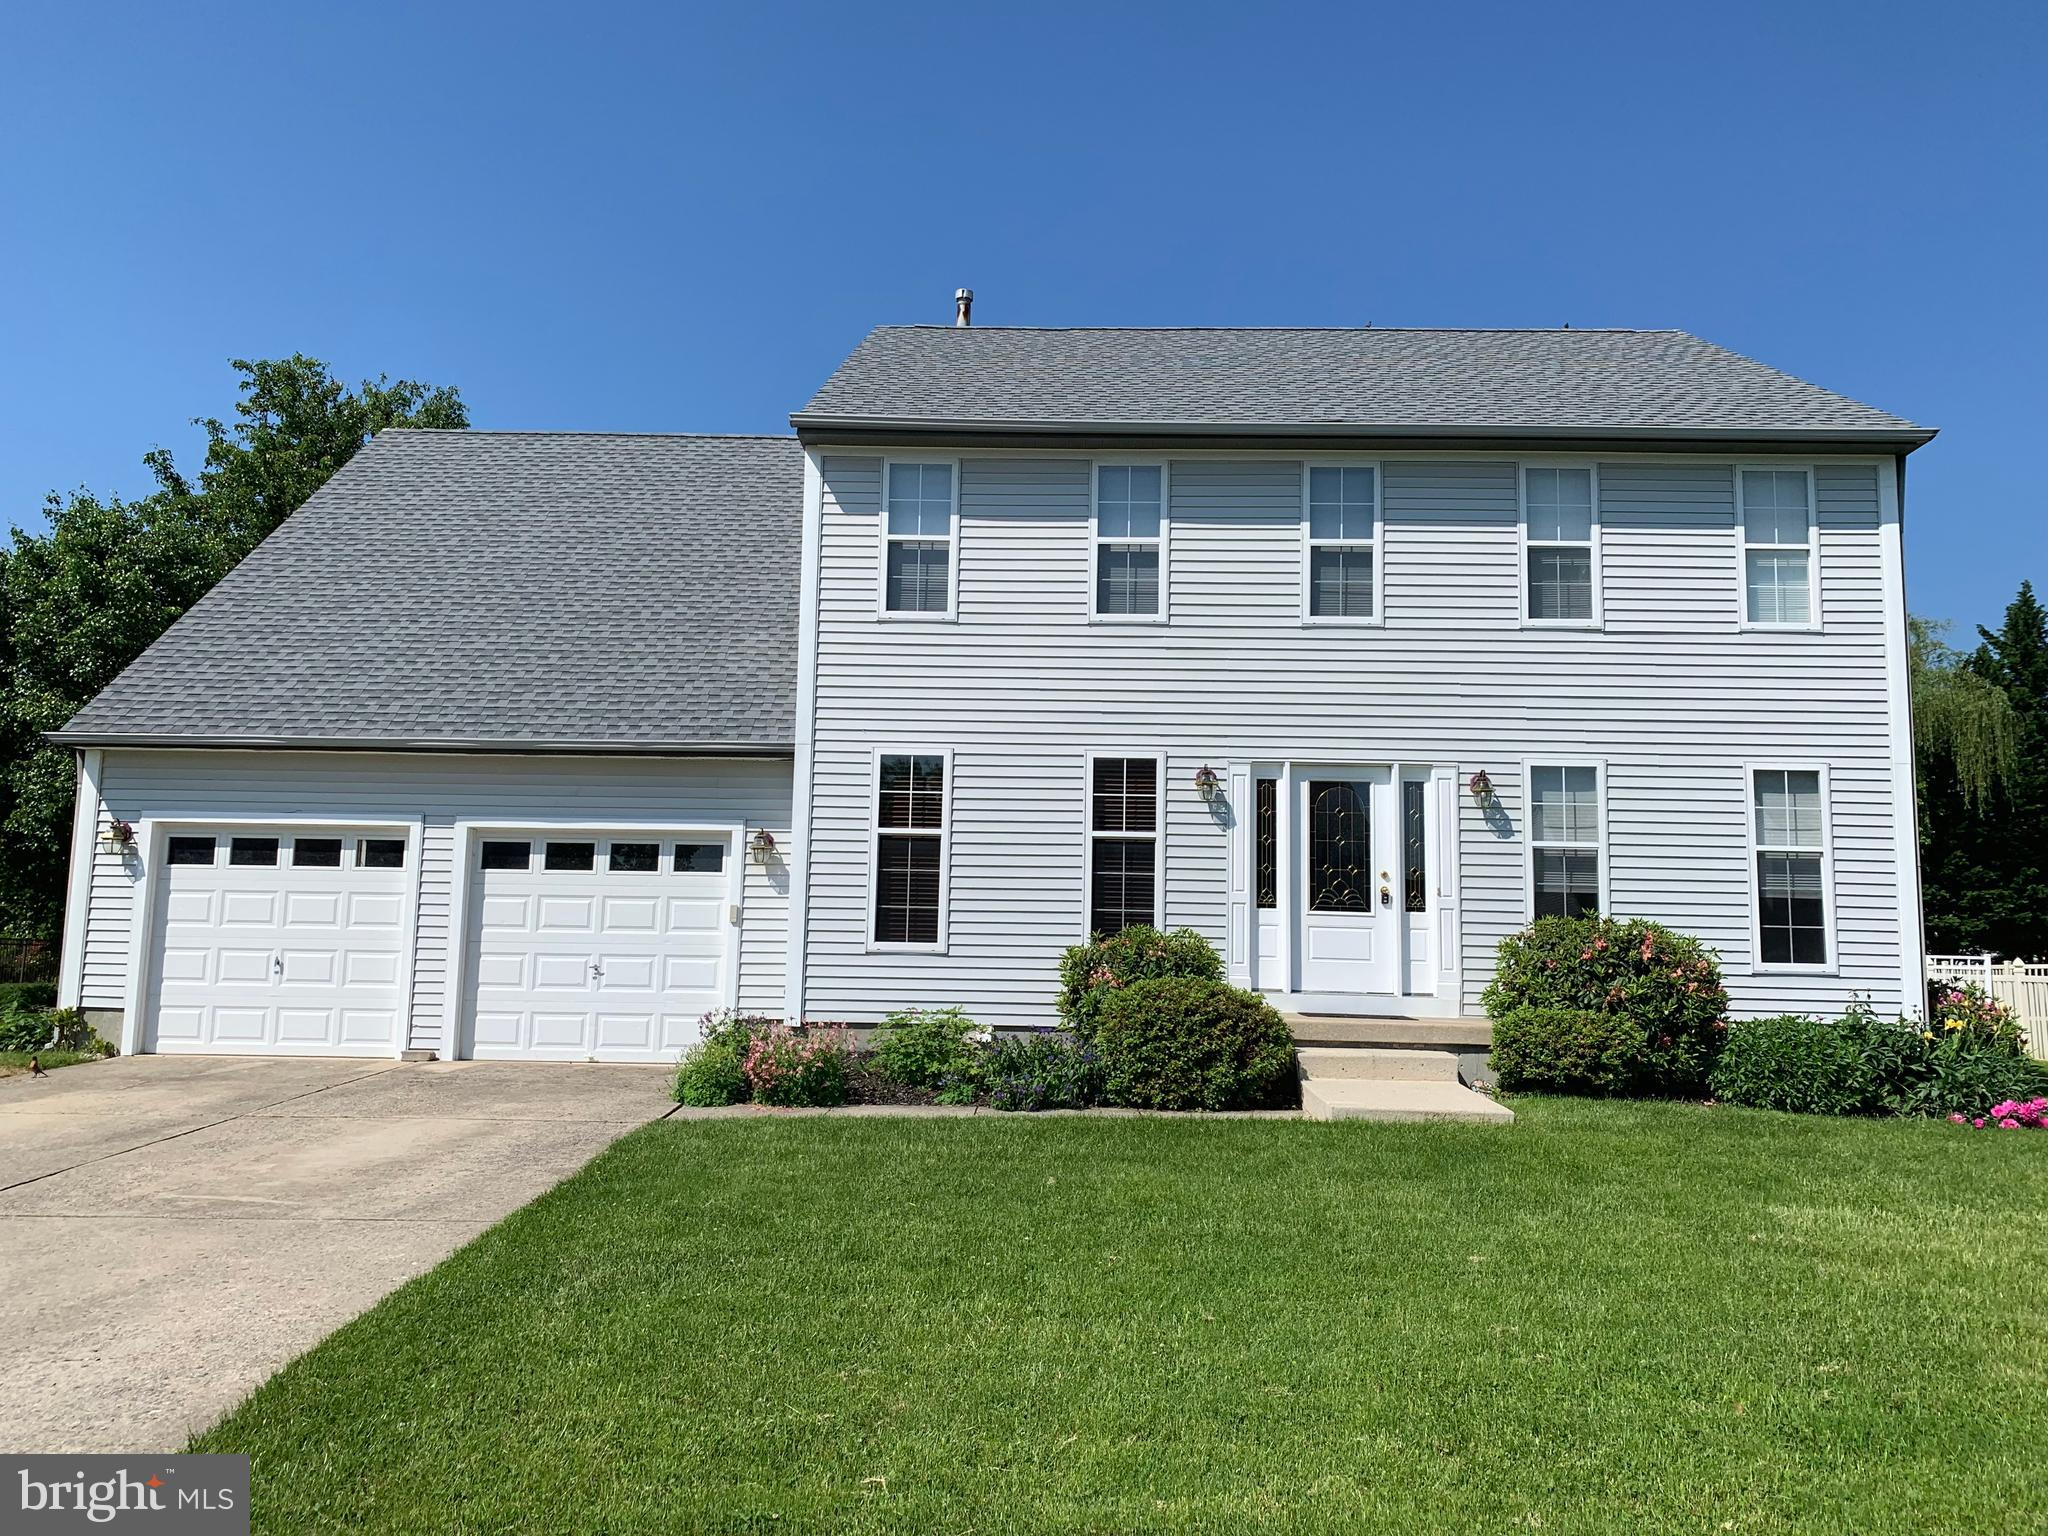 1649 PENNFIELD, WEST DEPTFORD, NJ 08096